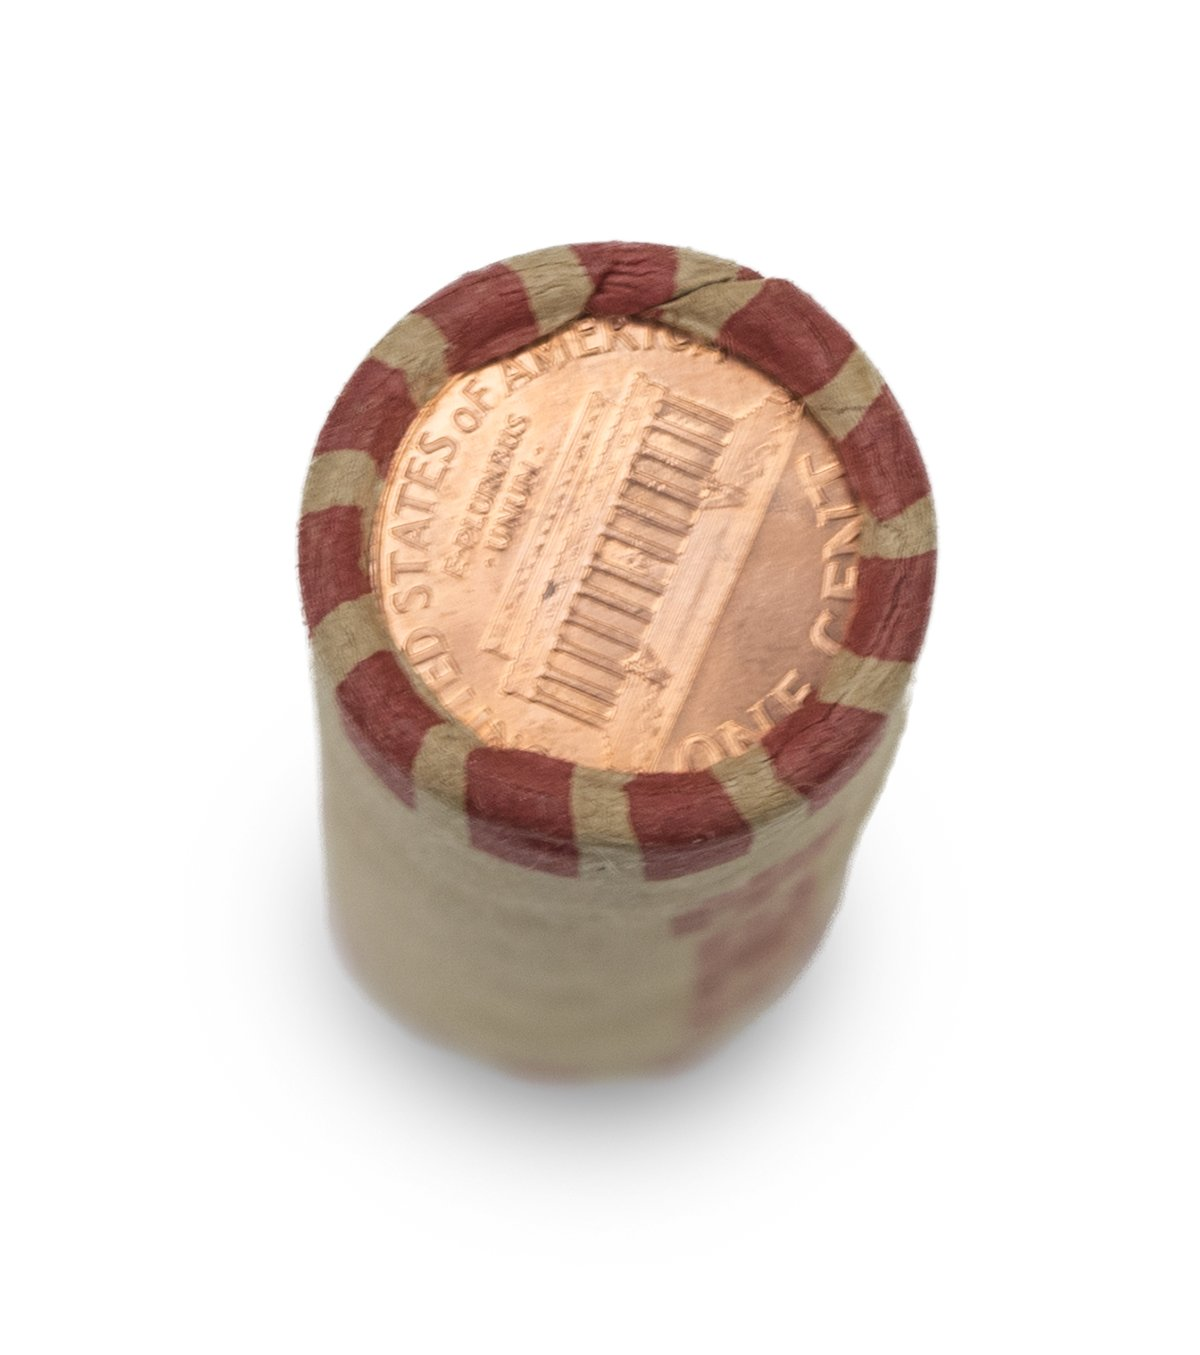 Pre-formed Penny Coin Wrappers (Box of 1,000) by Carousel Checks Inc. (Image #2)